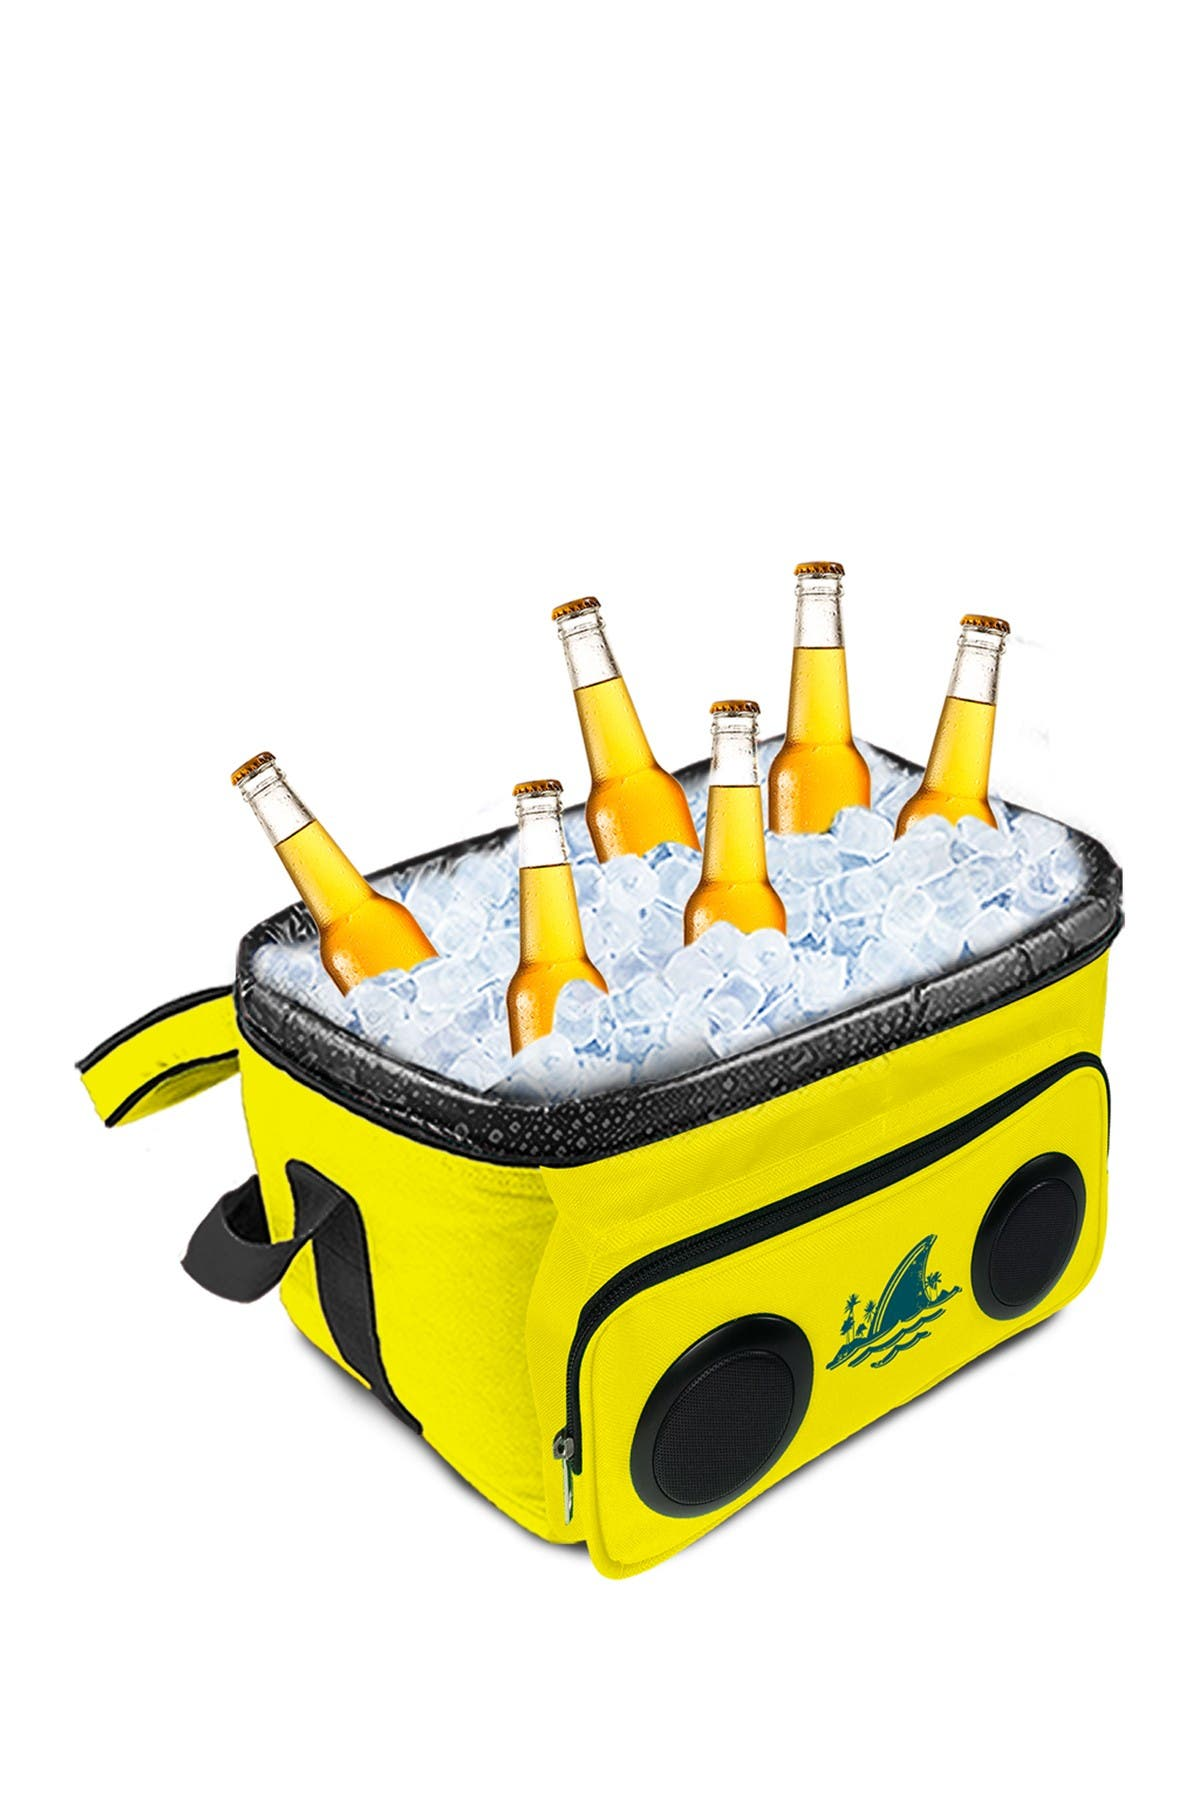 Image of LANDSHARK Soft Cooler with Bluetooth Speakers